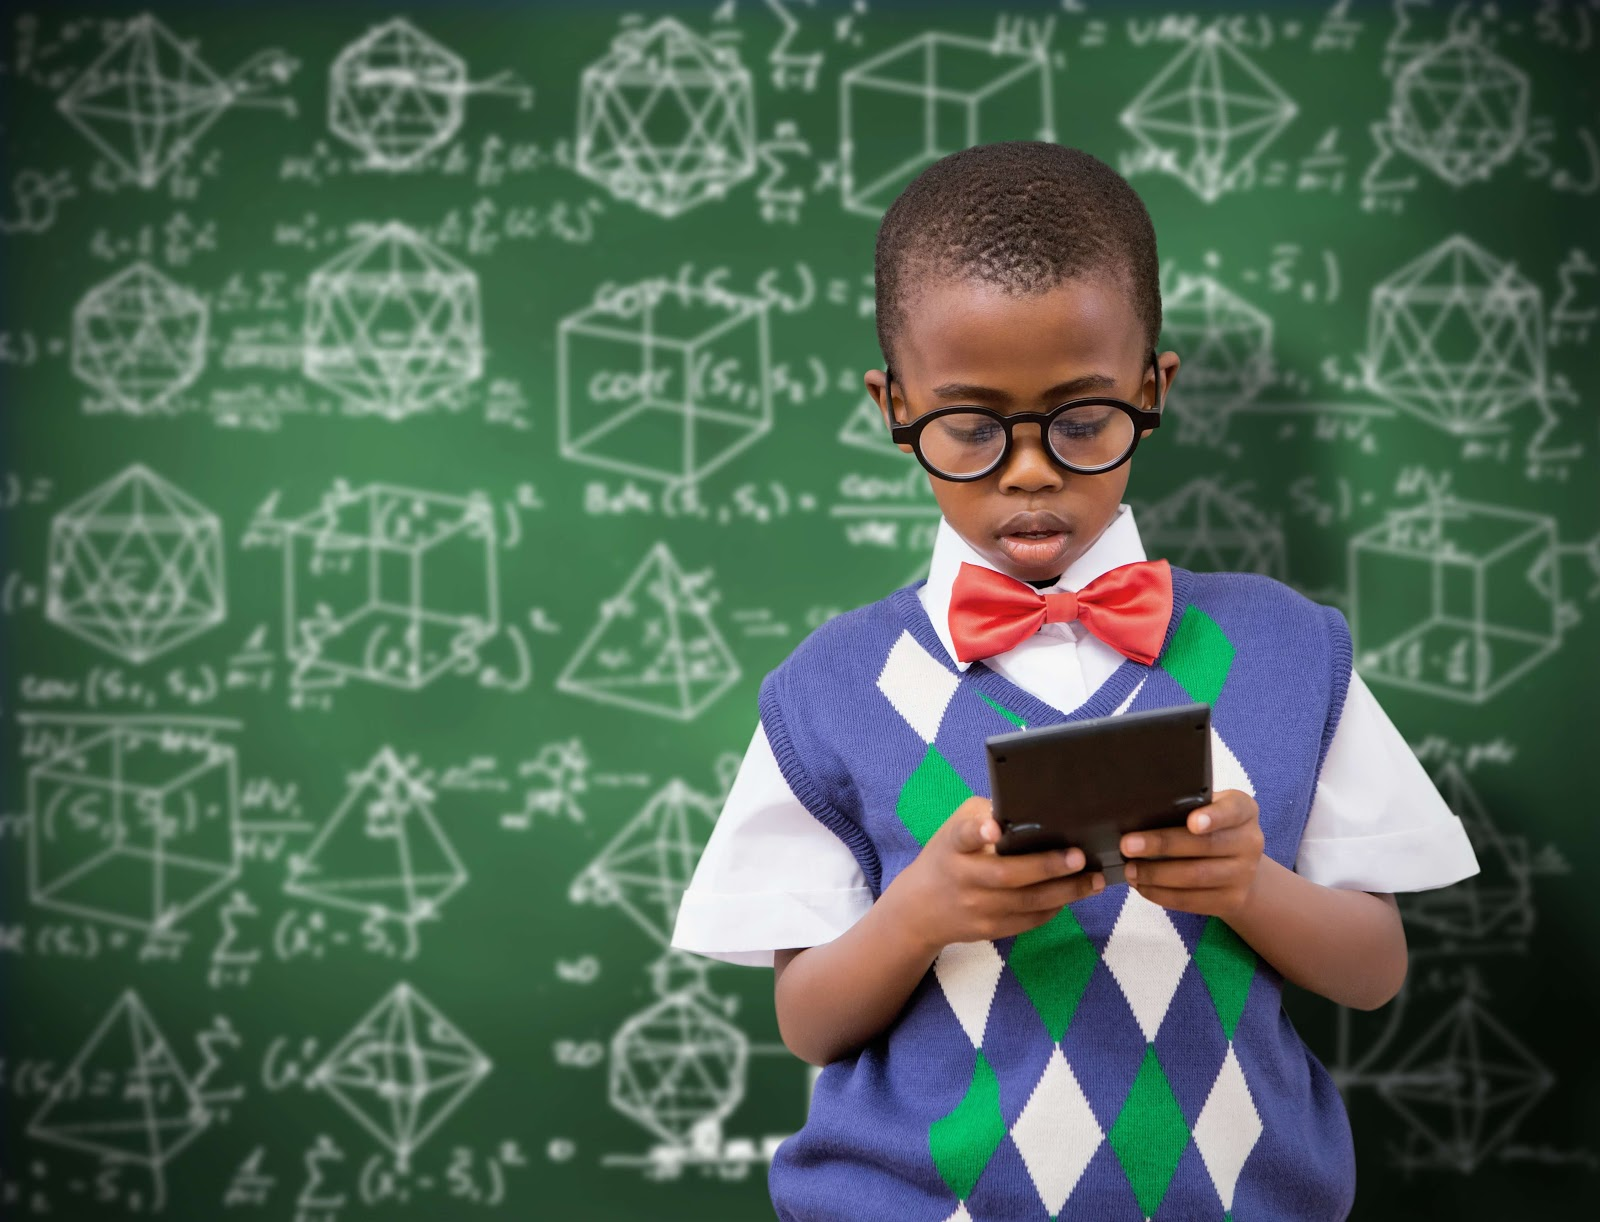 A kid holding a calculator in front of a blackboard